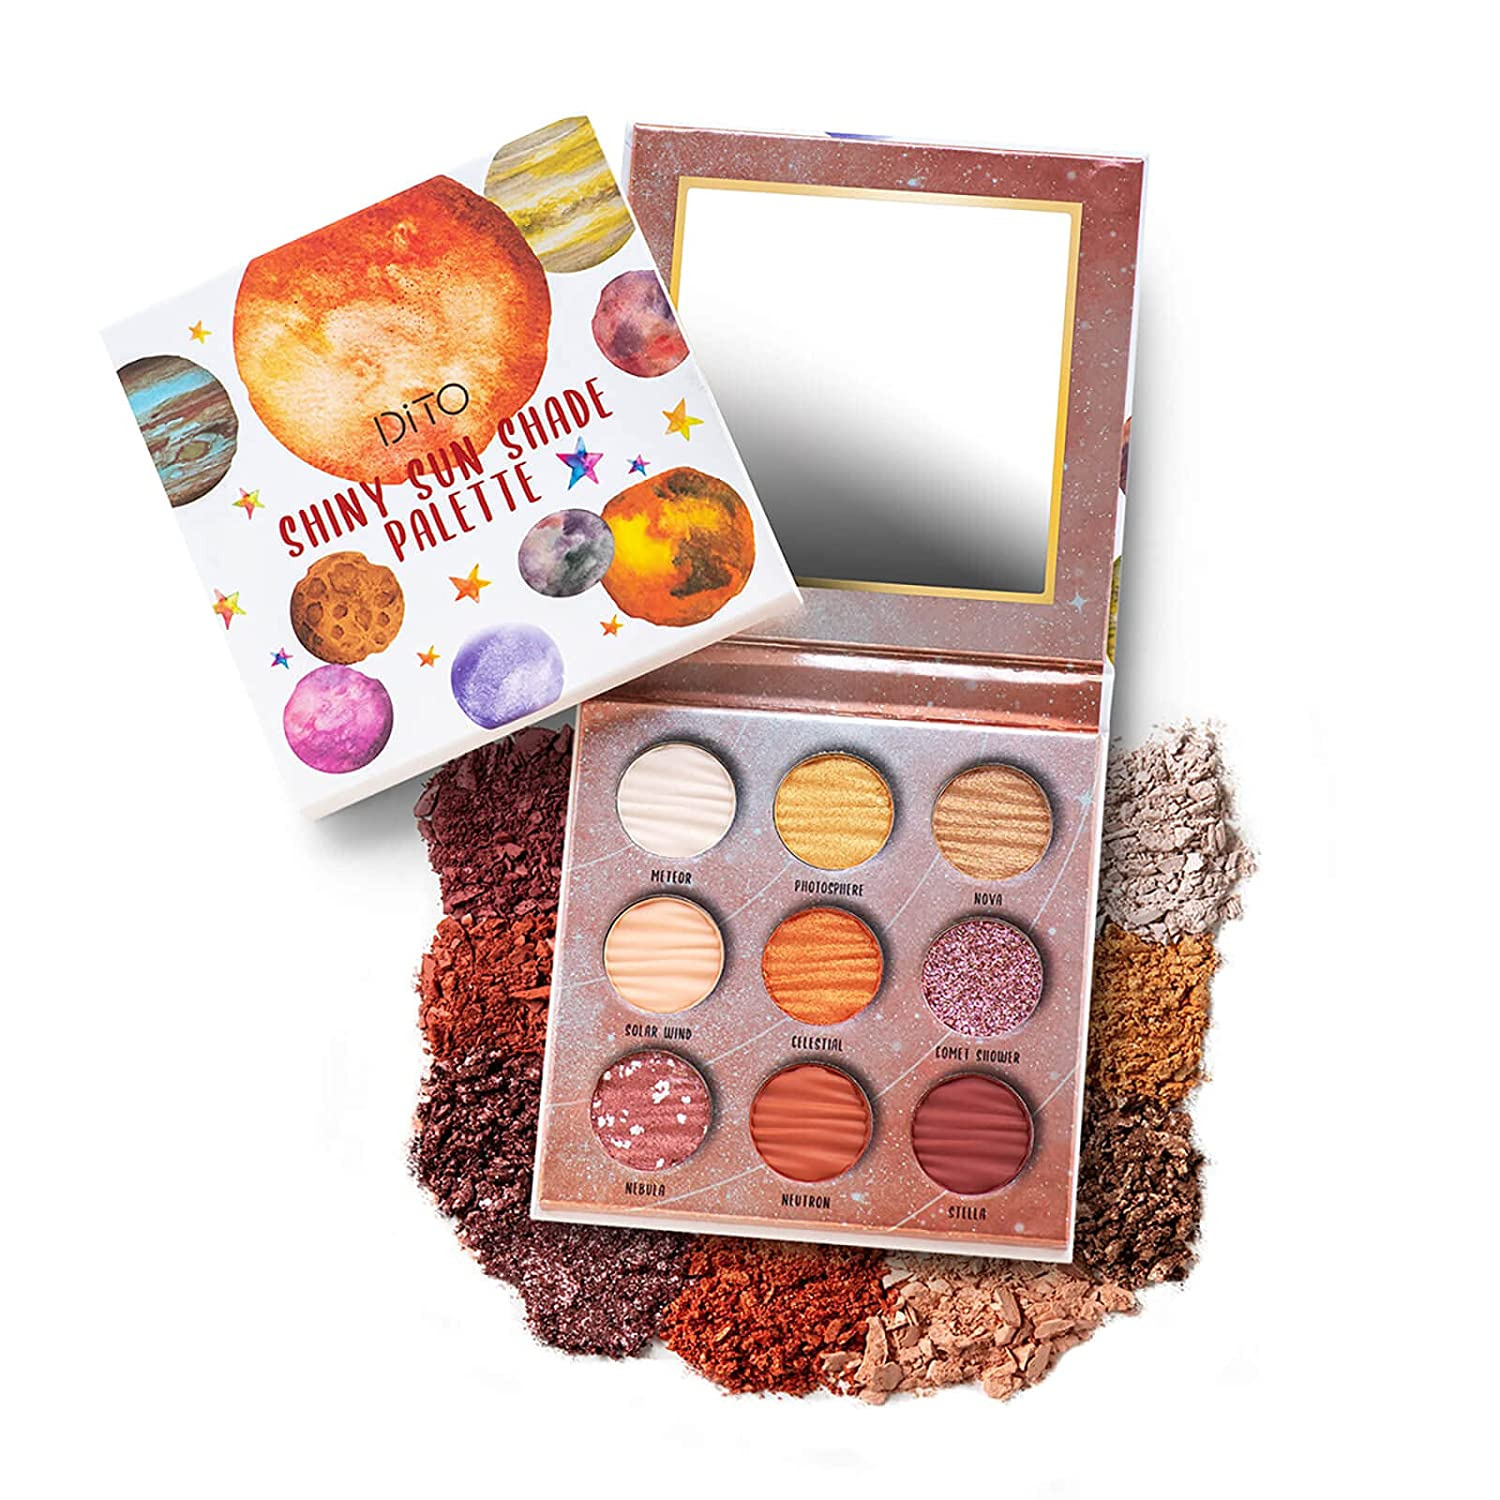 DiTO 9 Max 82% OFF trust Color Glitter Sun Palette Eyeshadow Pallet Mat